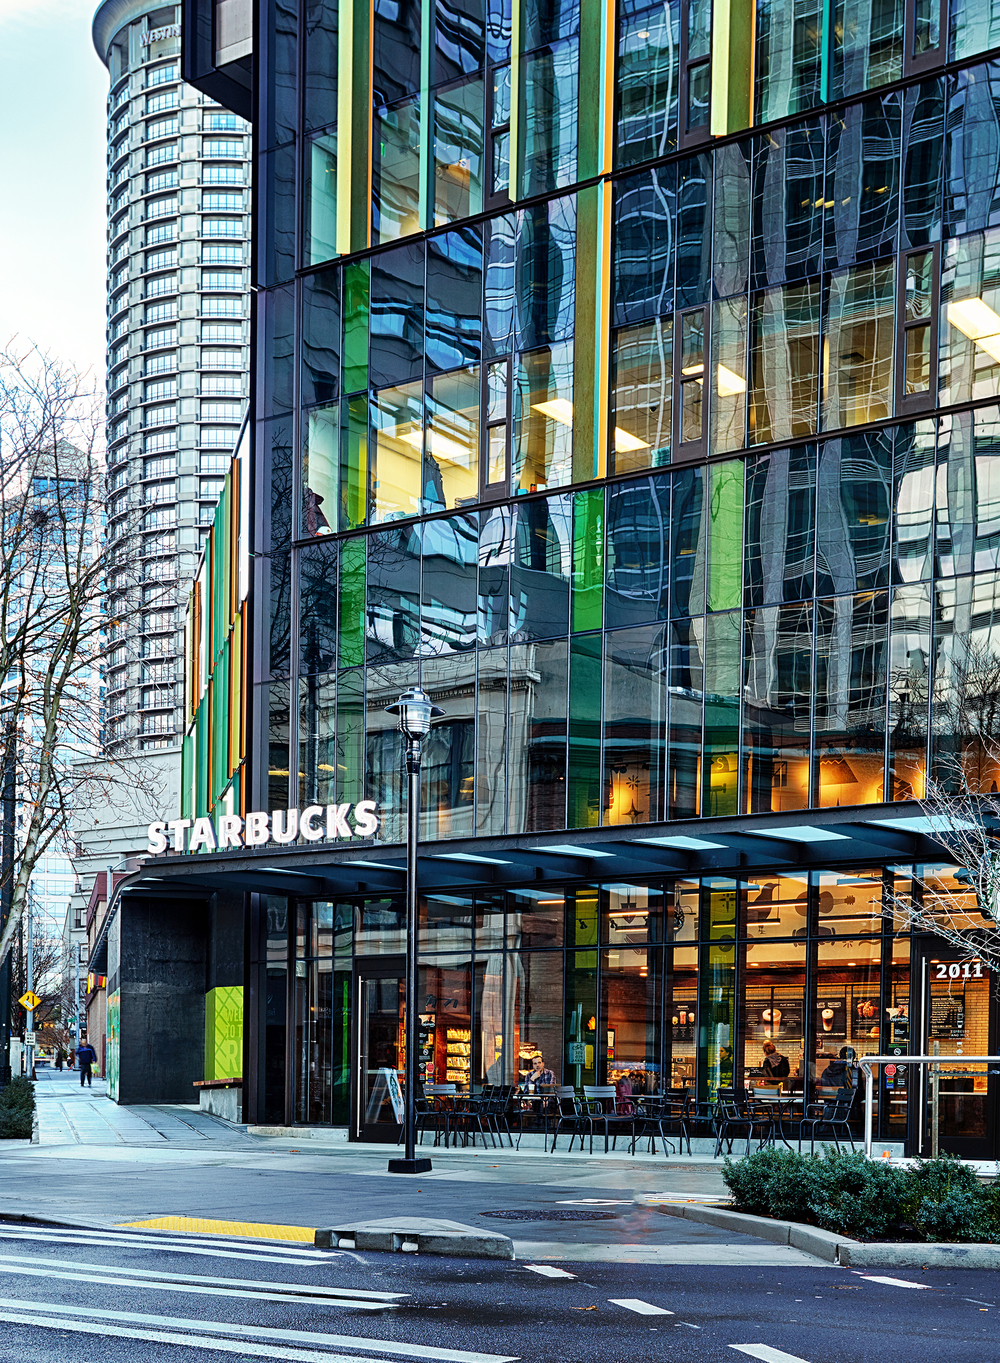 Starbucks - Amazon Building, Seattle, WA